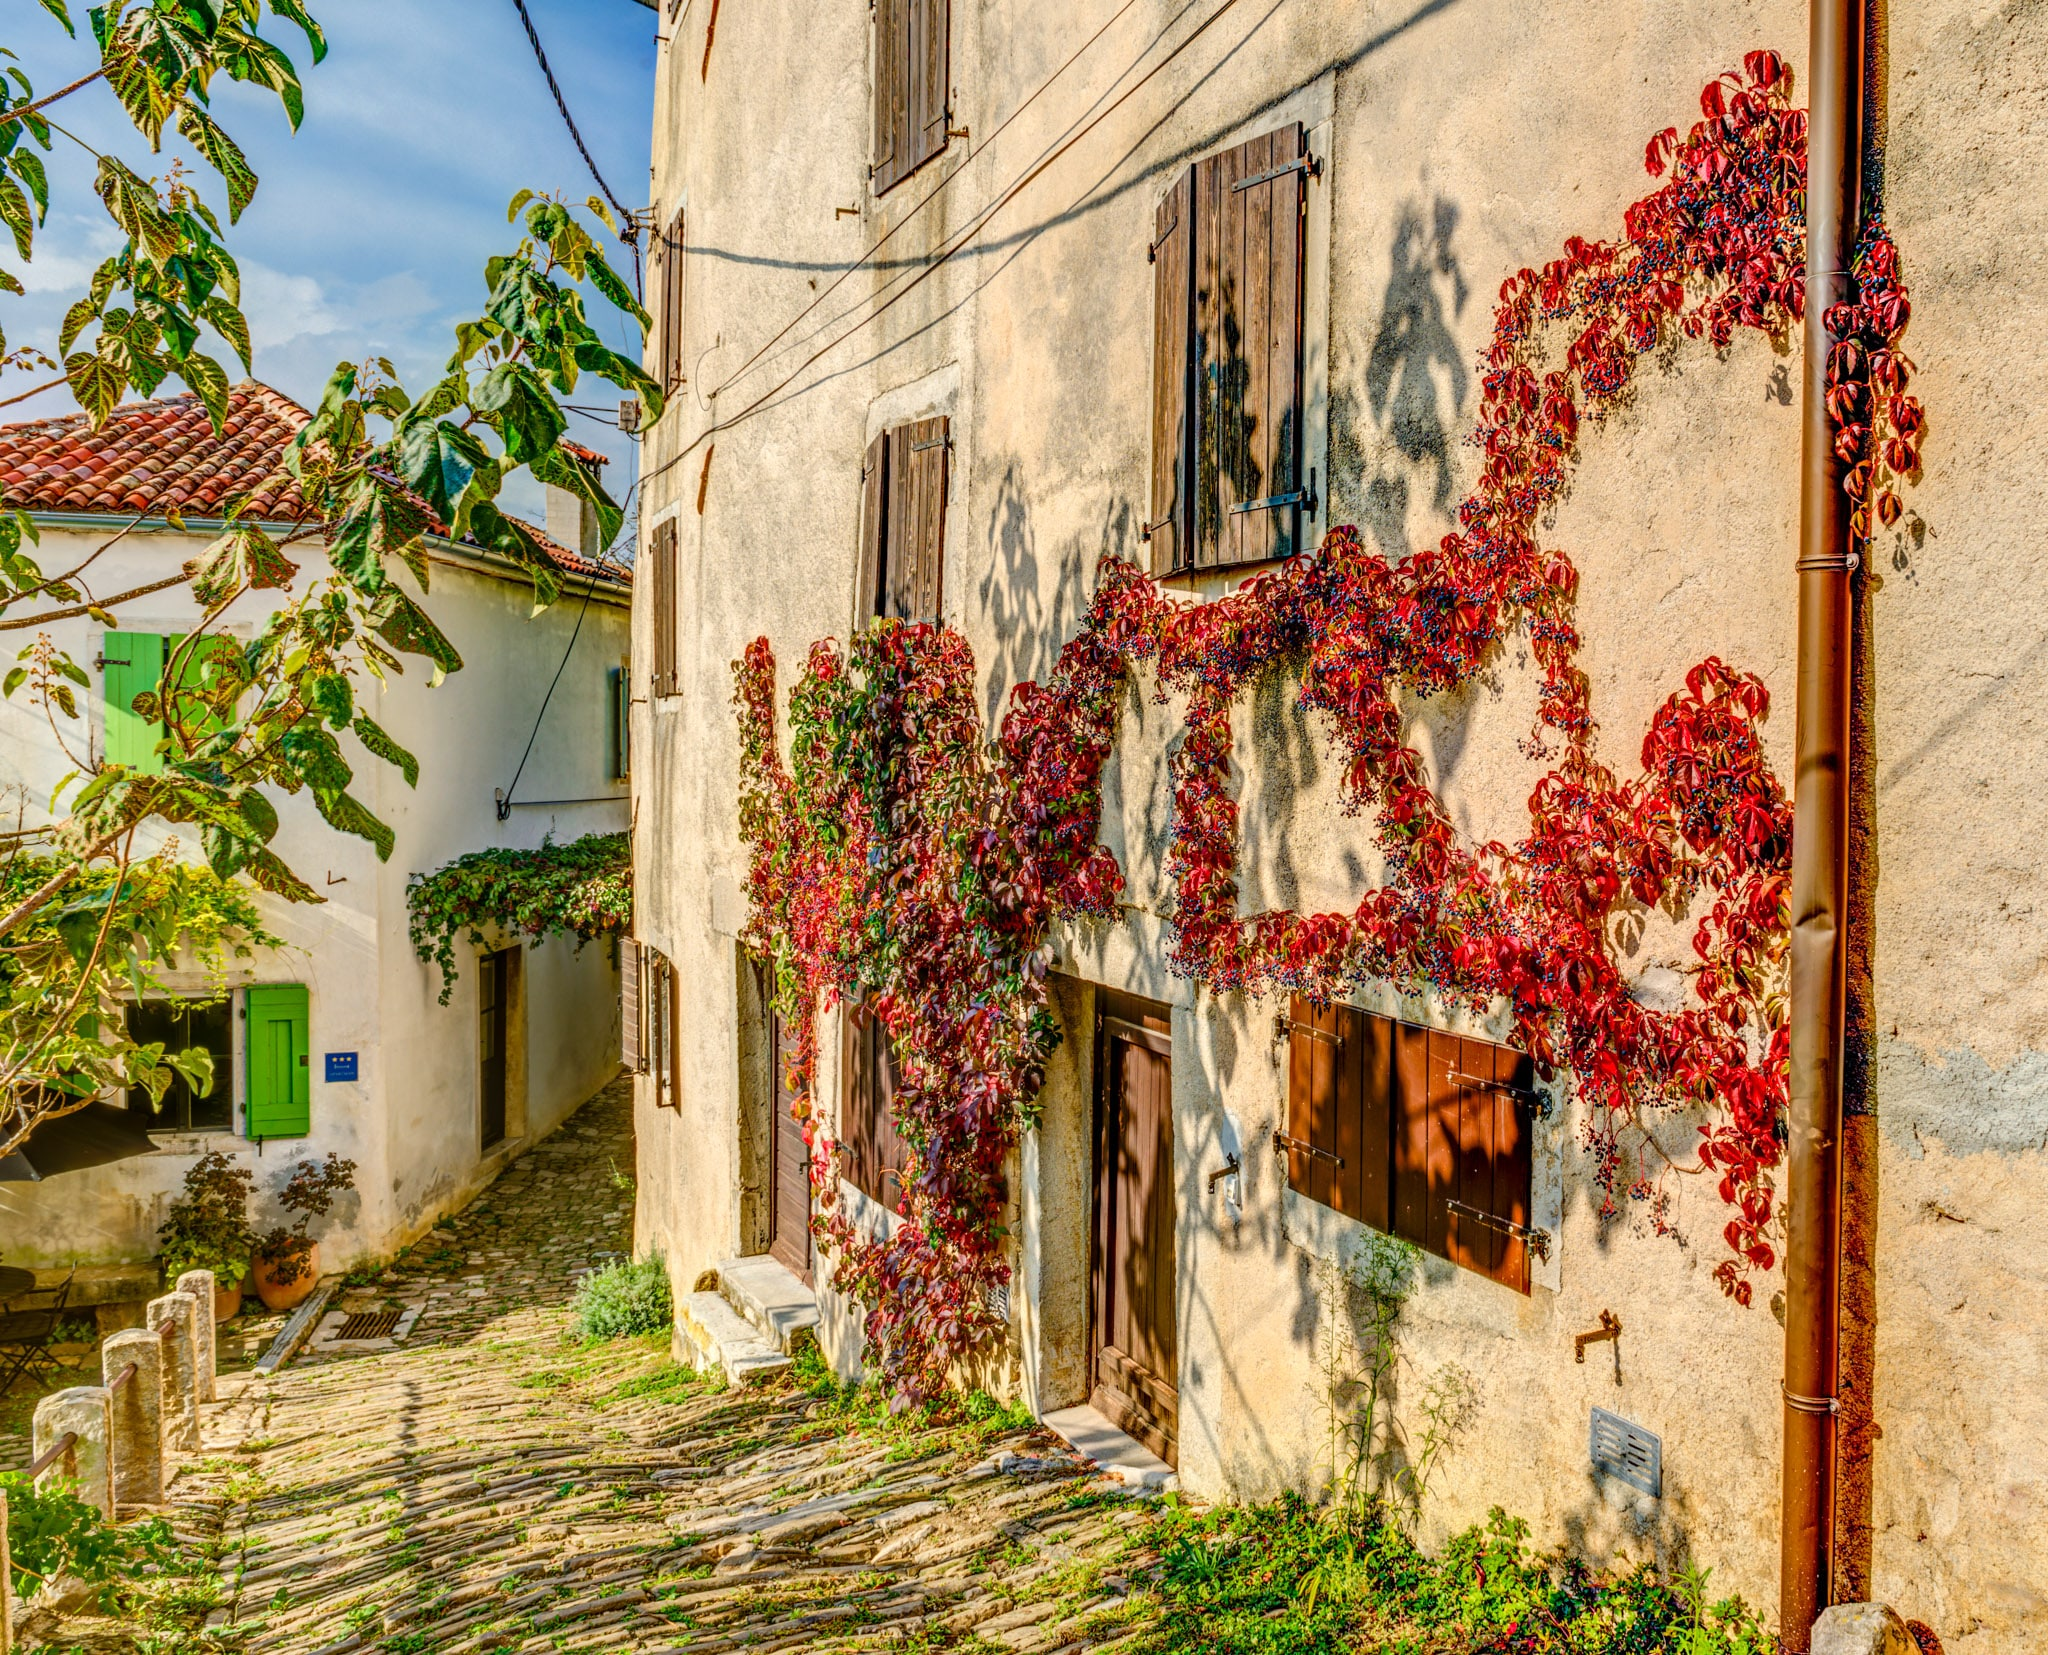 Looking down a cobbled street in the Medieval Istrian village of Motovun, Croatia. Red Virginia Creeper grows on the wall of a building.